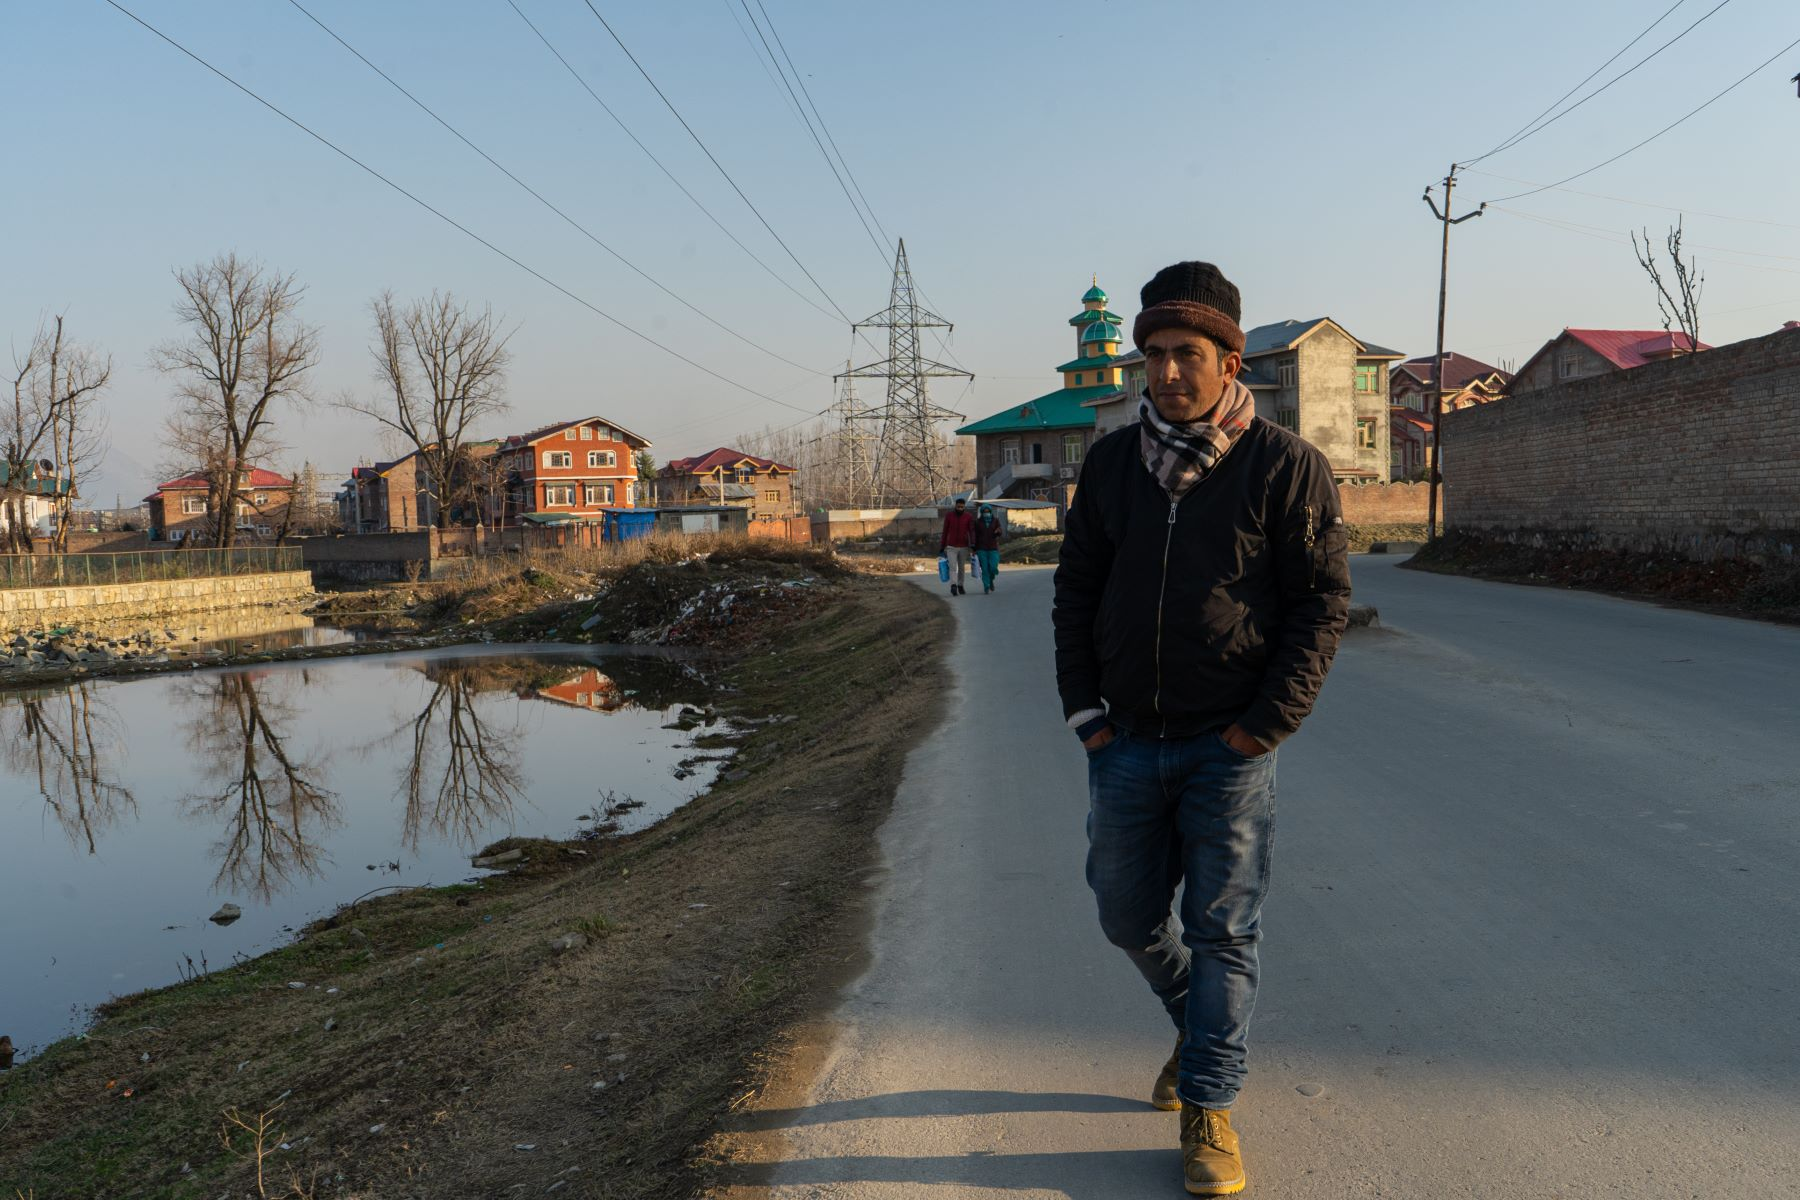 Sajad's Ahmed Khan's usual route for evening walks close to his grocery store in Bemina